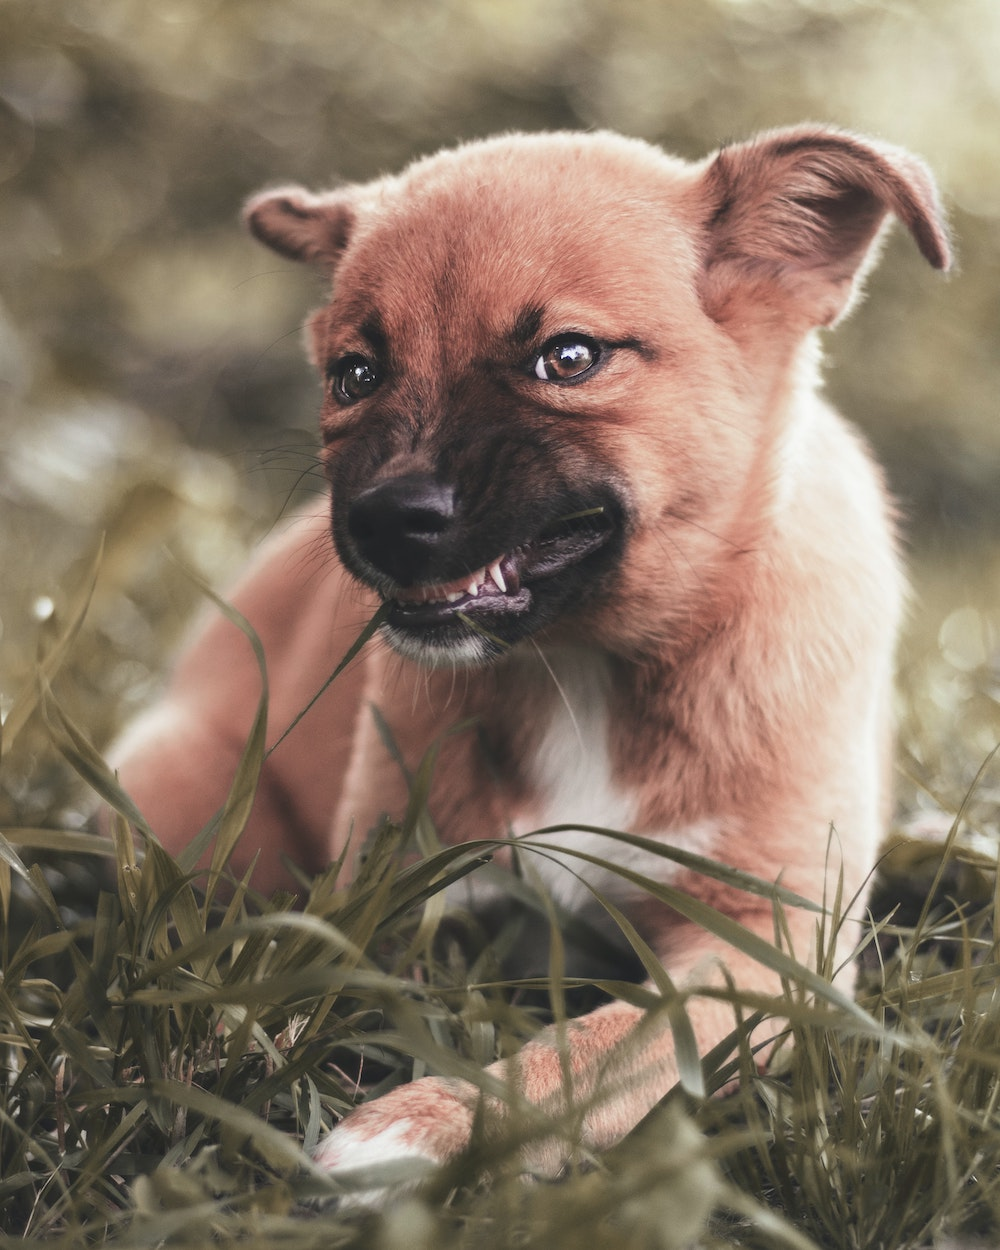 Dogs Eating Grass: Why do they do it?